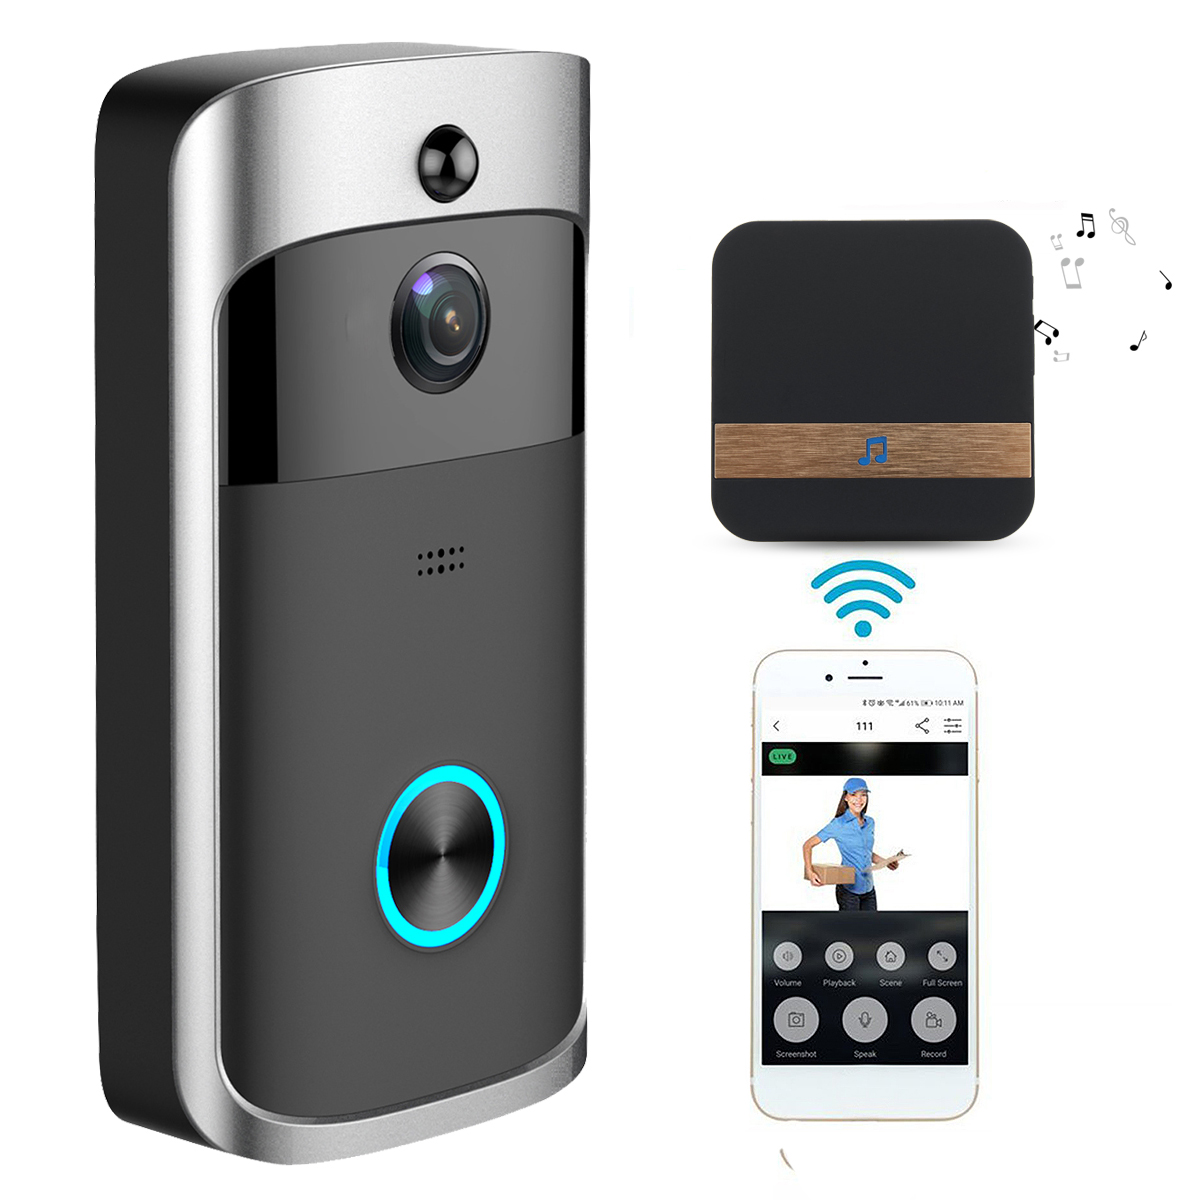 wireless camera video doorbell home security wifi smartphone remote video rainproof. Black Bedroom Furniture Sets. Home Design Ideas